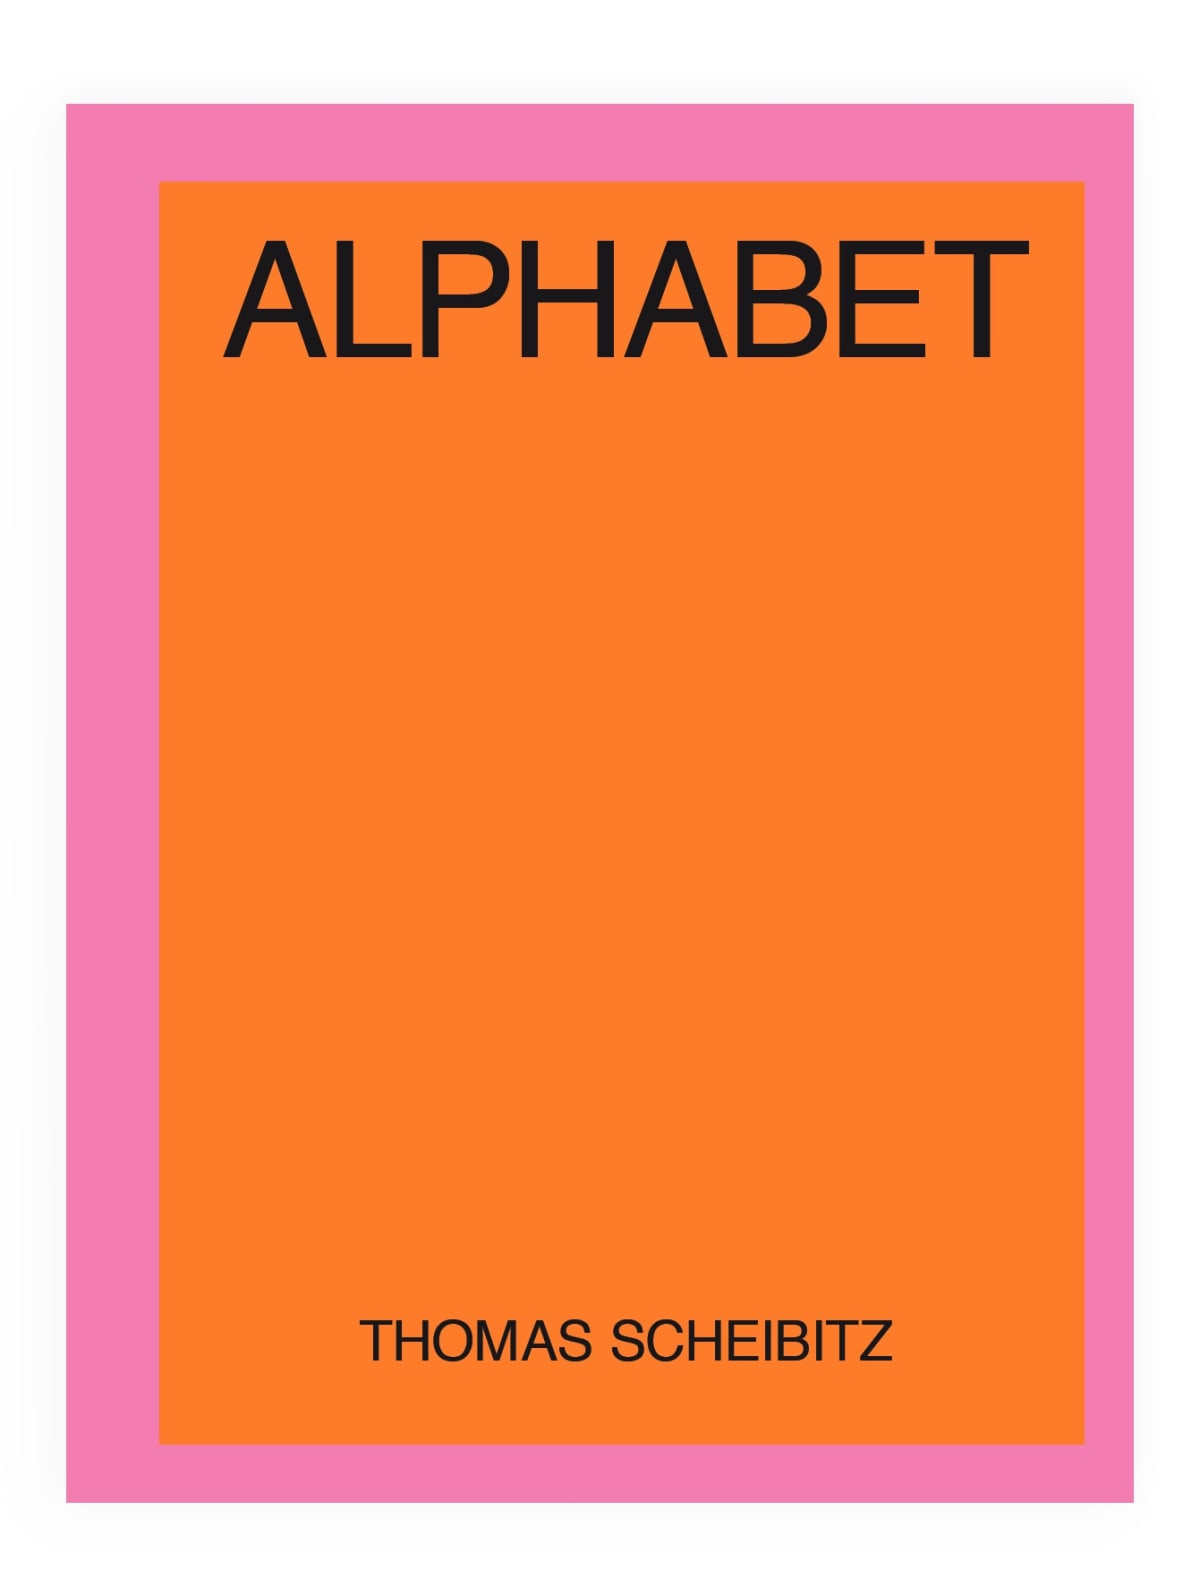 Exhibition catalogue book cover. Orange rectangle with a thick pink border. Black title text: Alphabet, Thomas Scheibitz